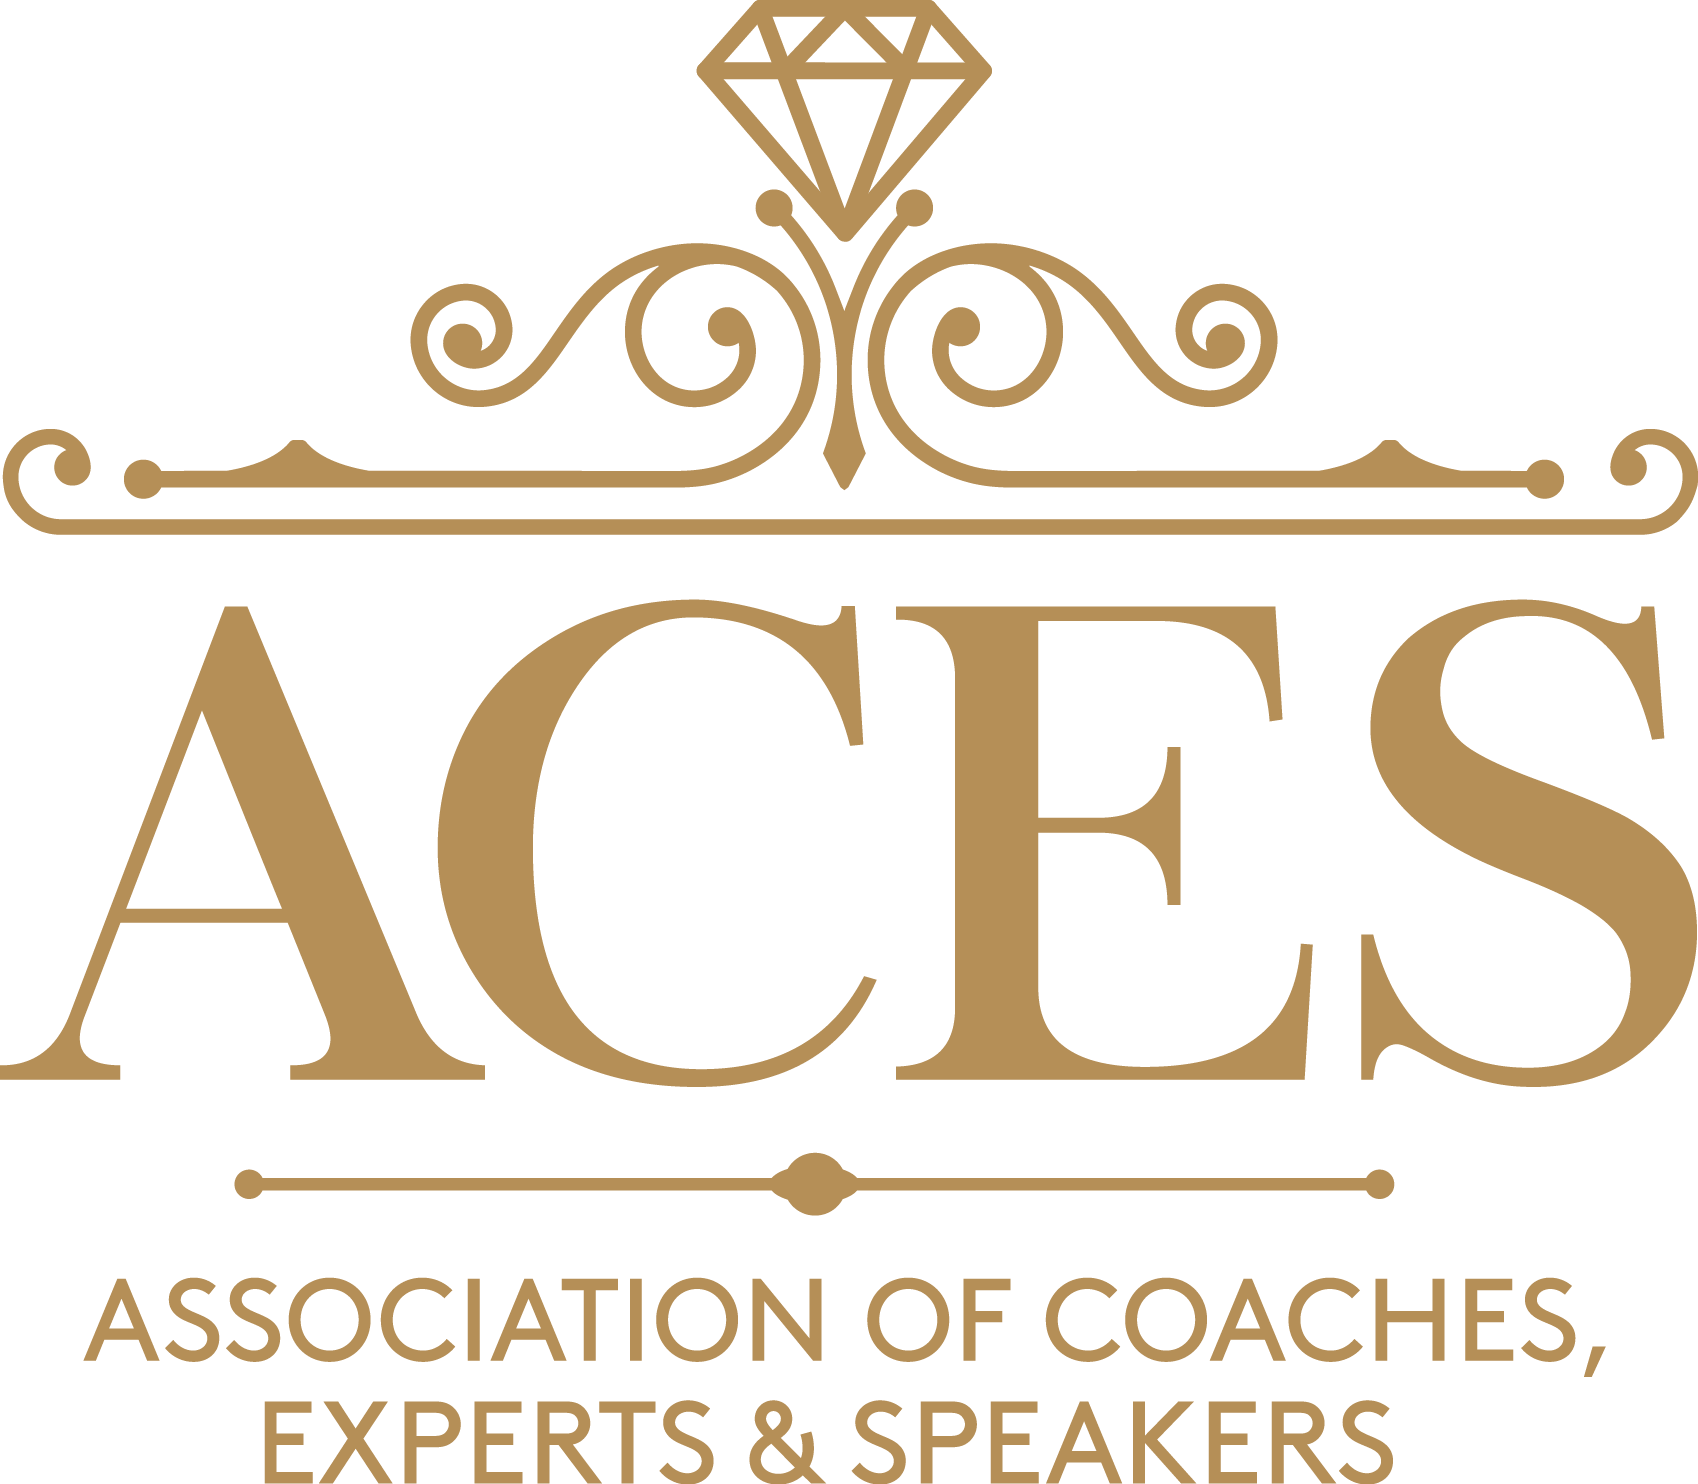 Association of Coaches, Experts & Speakers